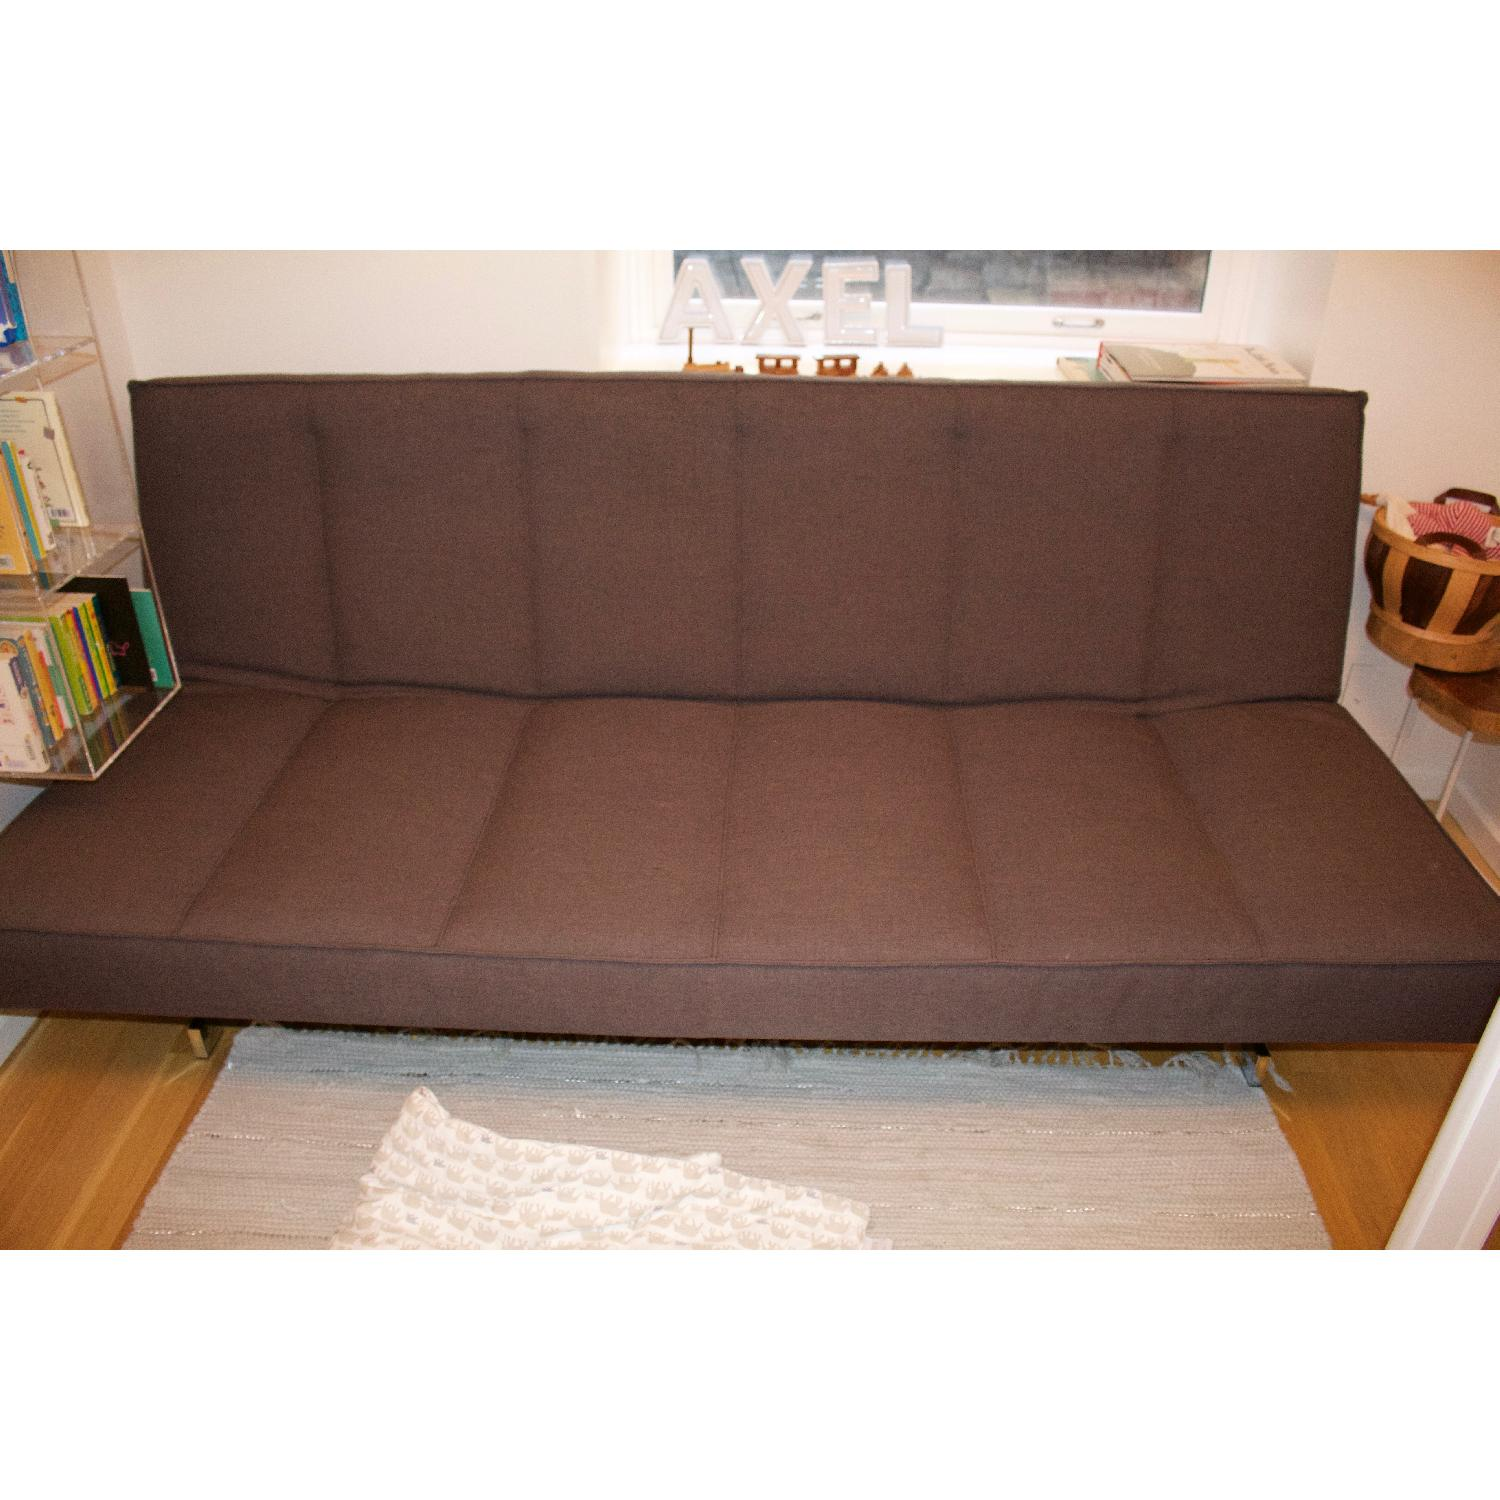 CB2 Flex Gravel Sleeper Sofa - image-19